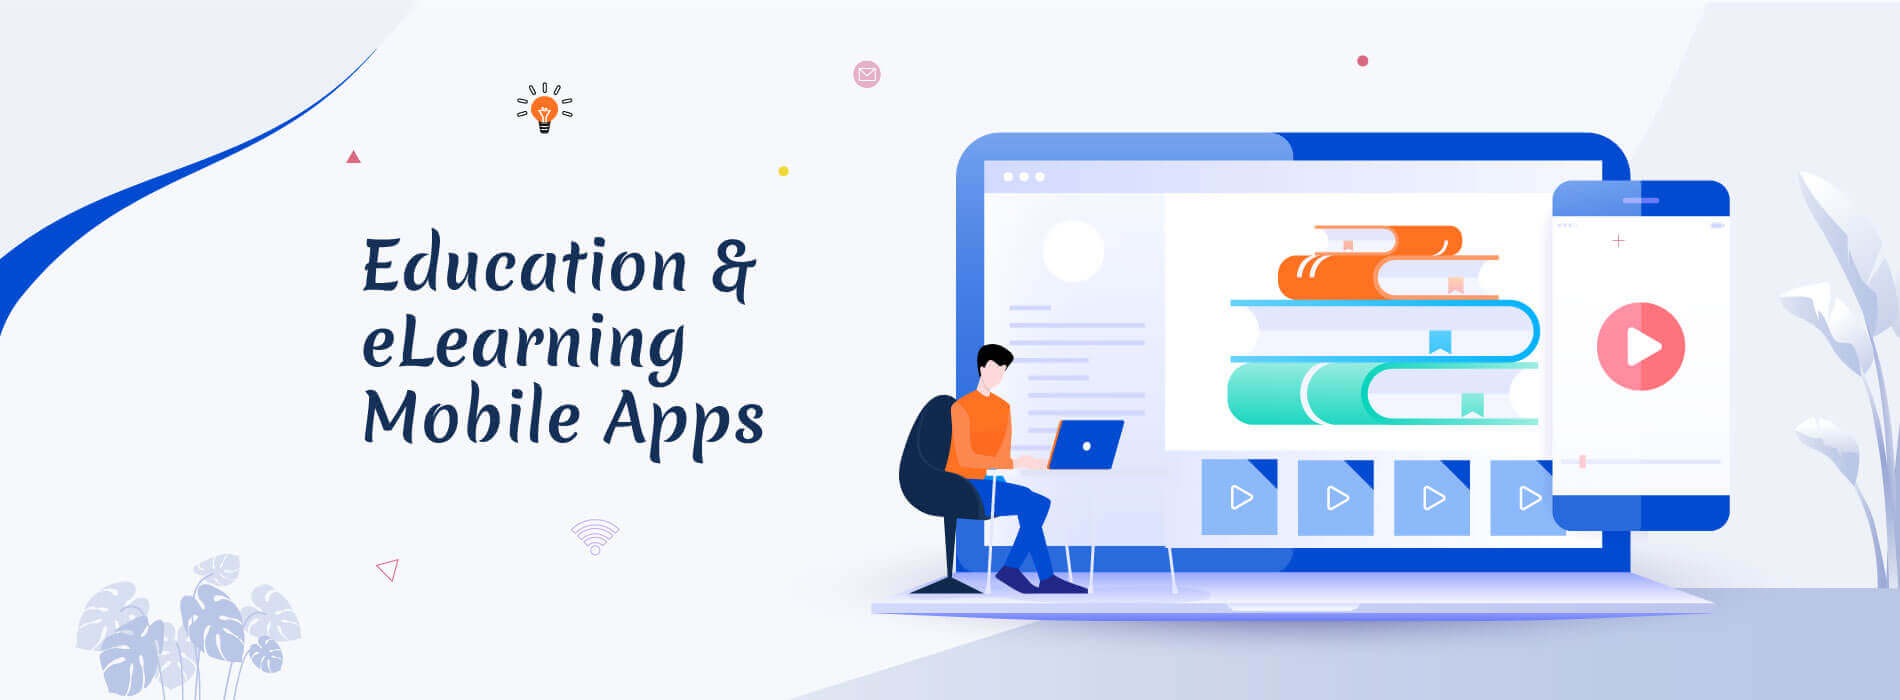 How to Develop an Education and eLearning App